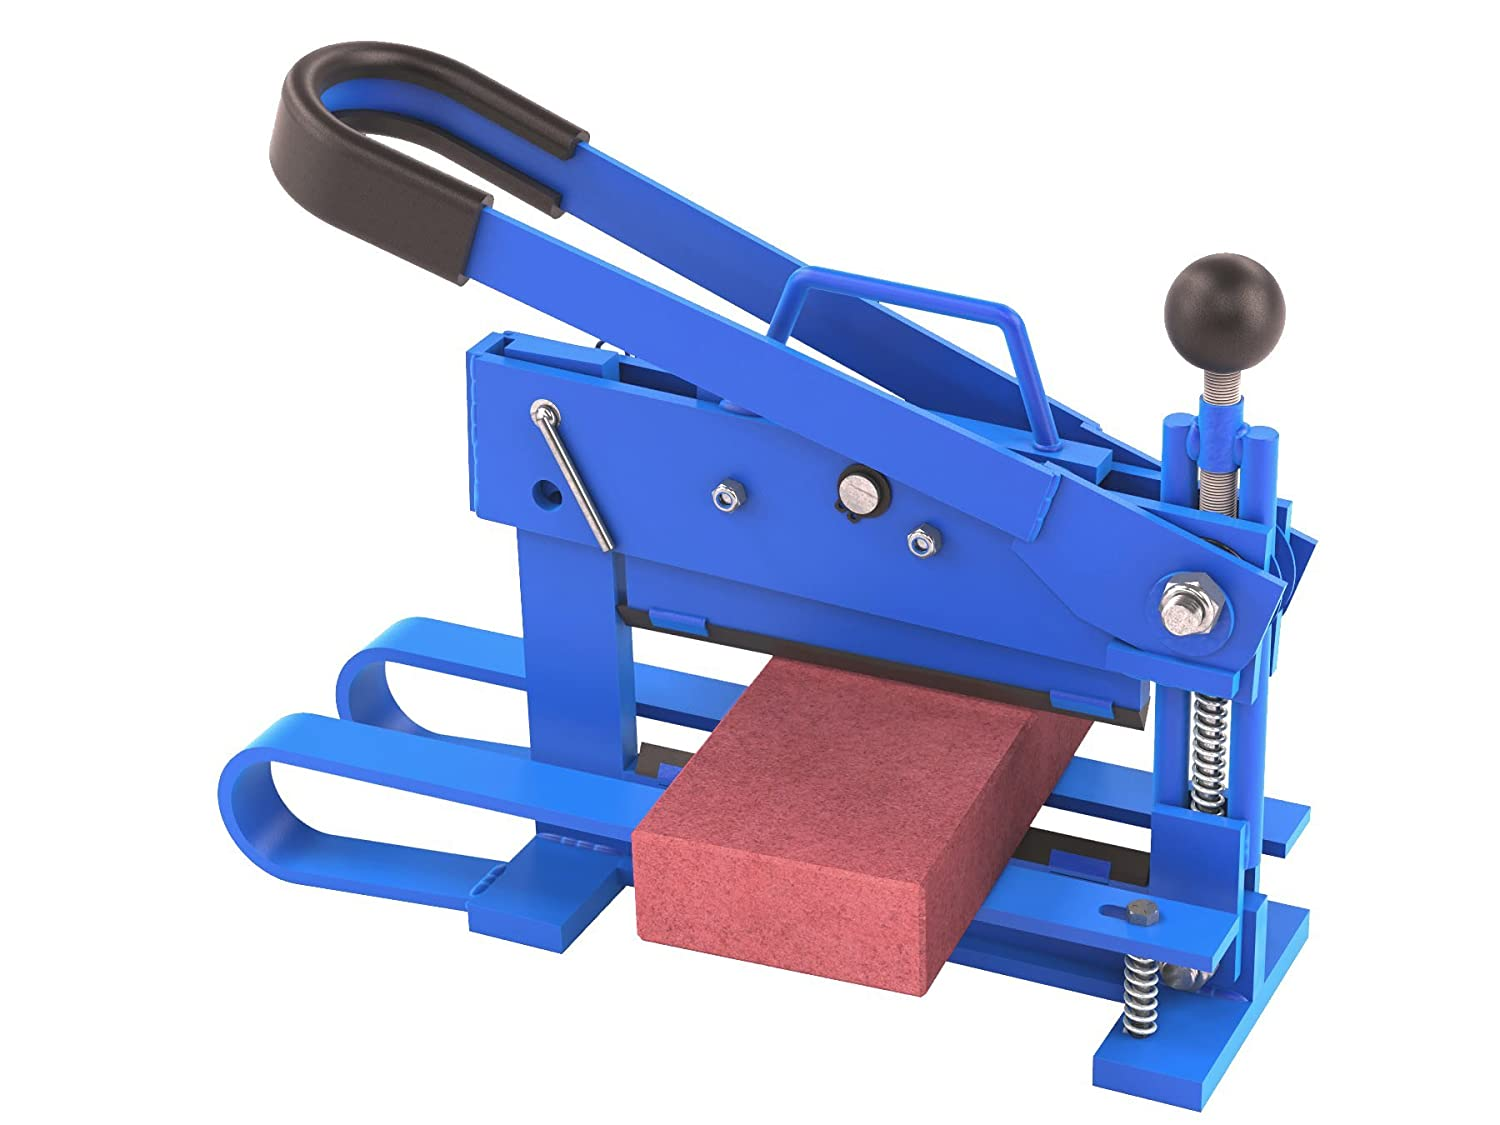 Bon 11-590 Paver and Brick Buster with 10-Inch Blade Capacity ...